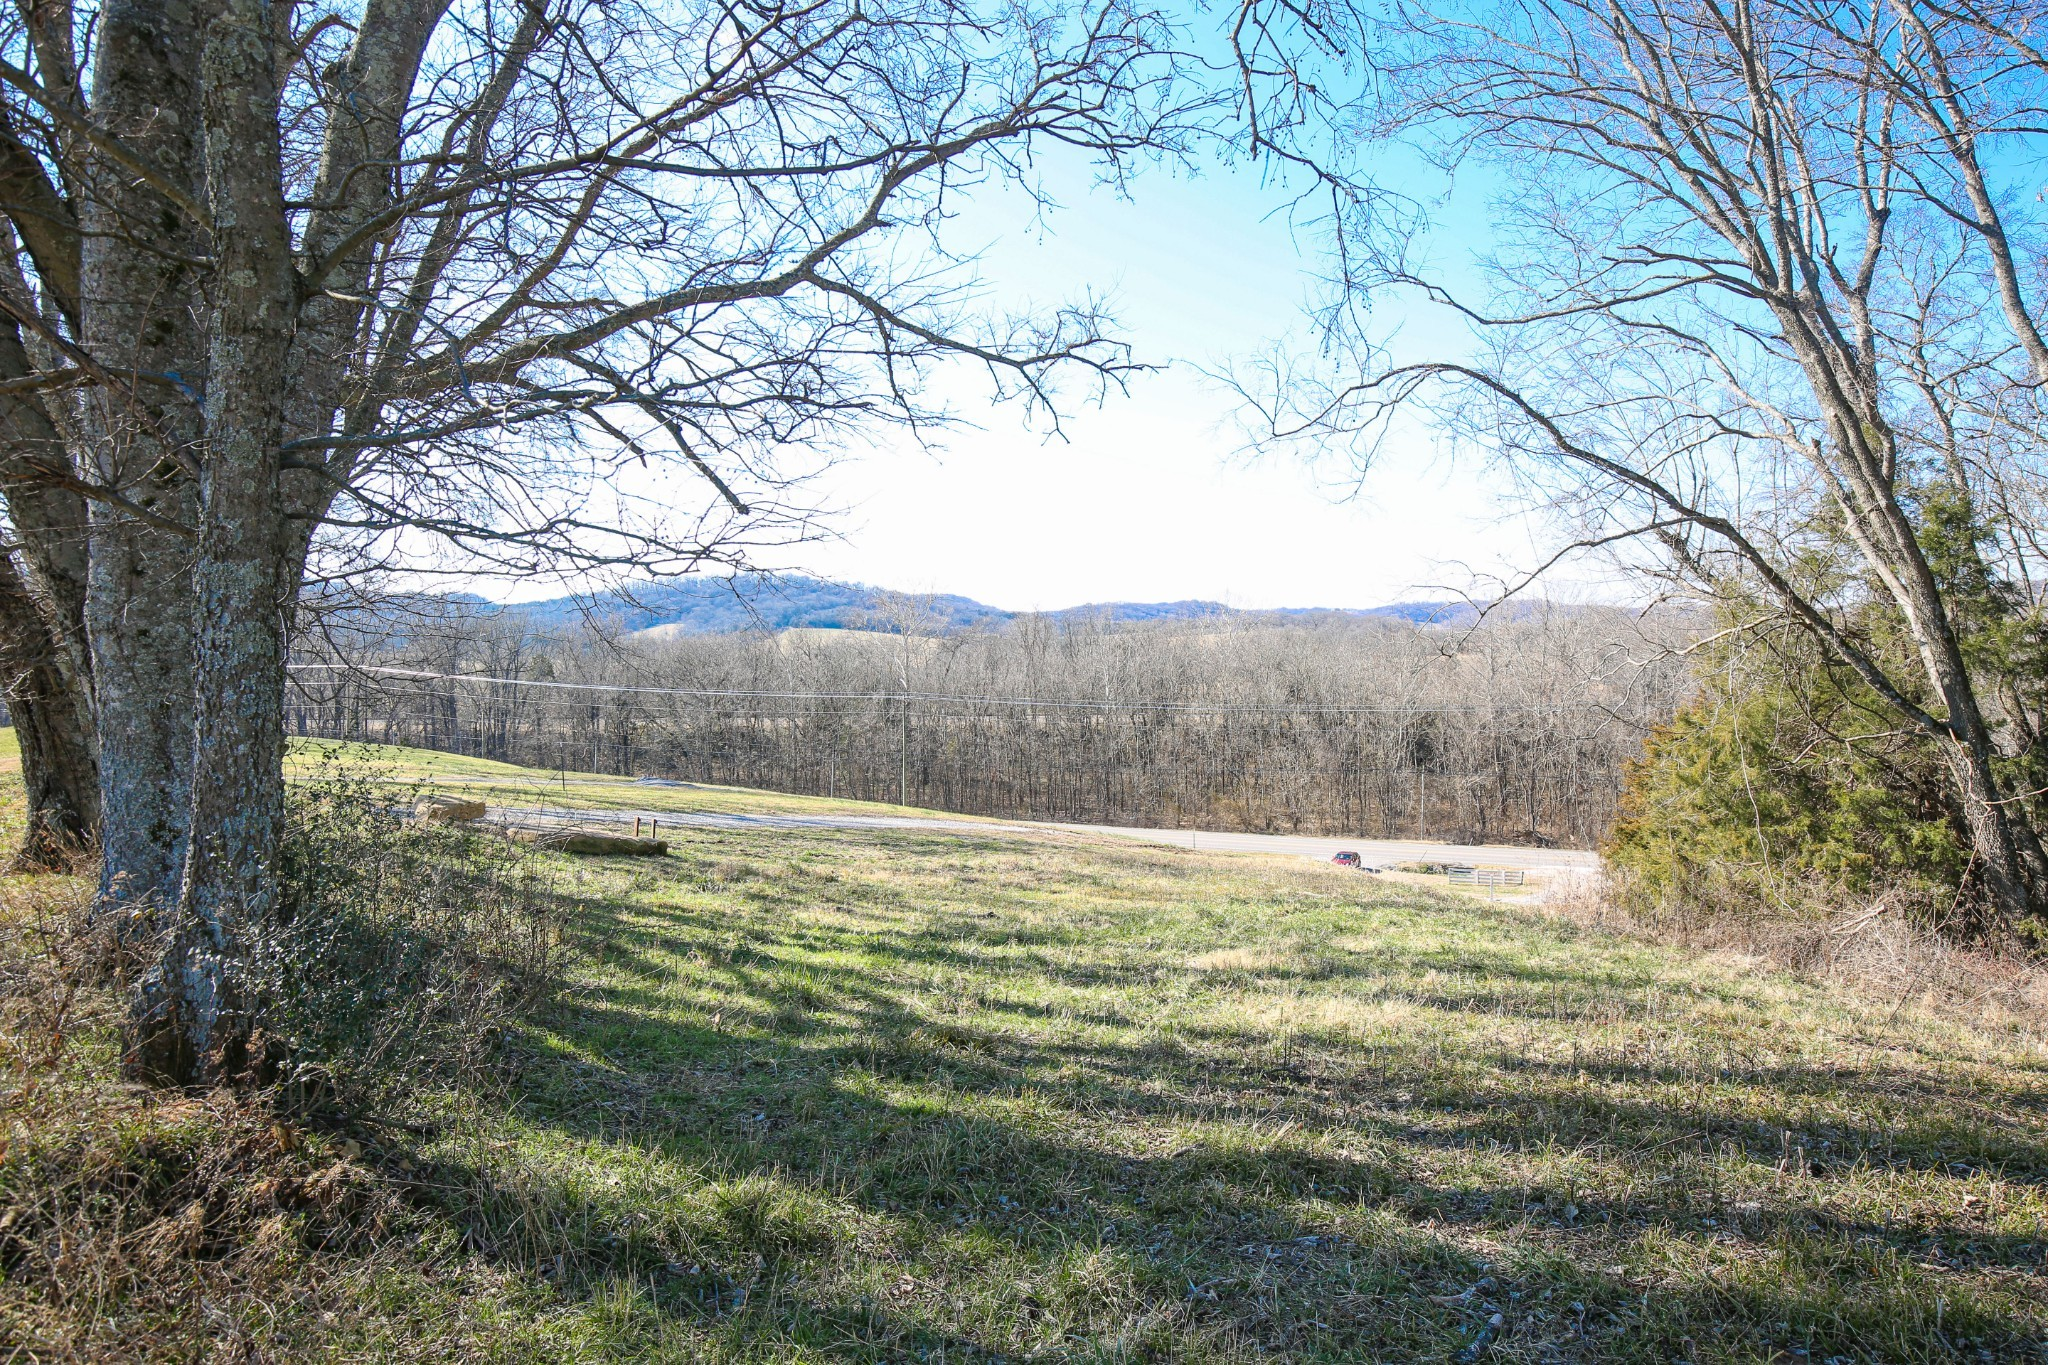 Incredible piece of property with gorgeous views. Build your dream home. 4 Bedroom perk site on 2.5 acres of grade A+ soil but can easily get approval for 5 bedrooms. Gas and electric at road. Right on the Rutherford / Williamson county border. Located in the rolling hills of College Grove. 13 minutes from Arrington Vineyards.